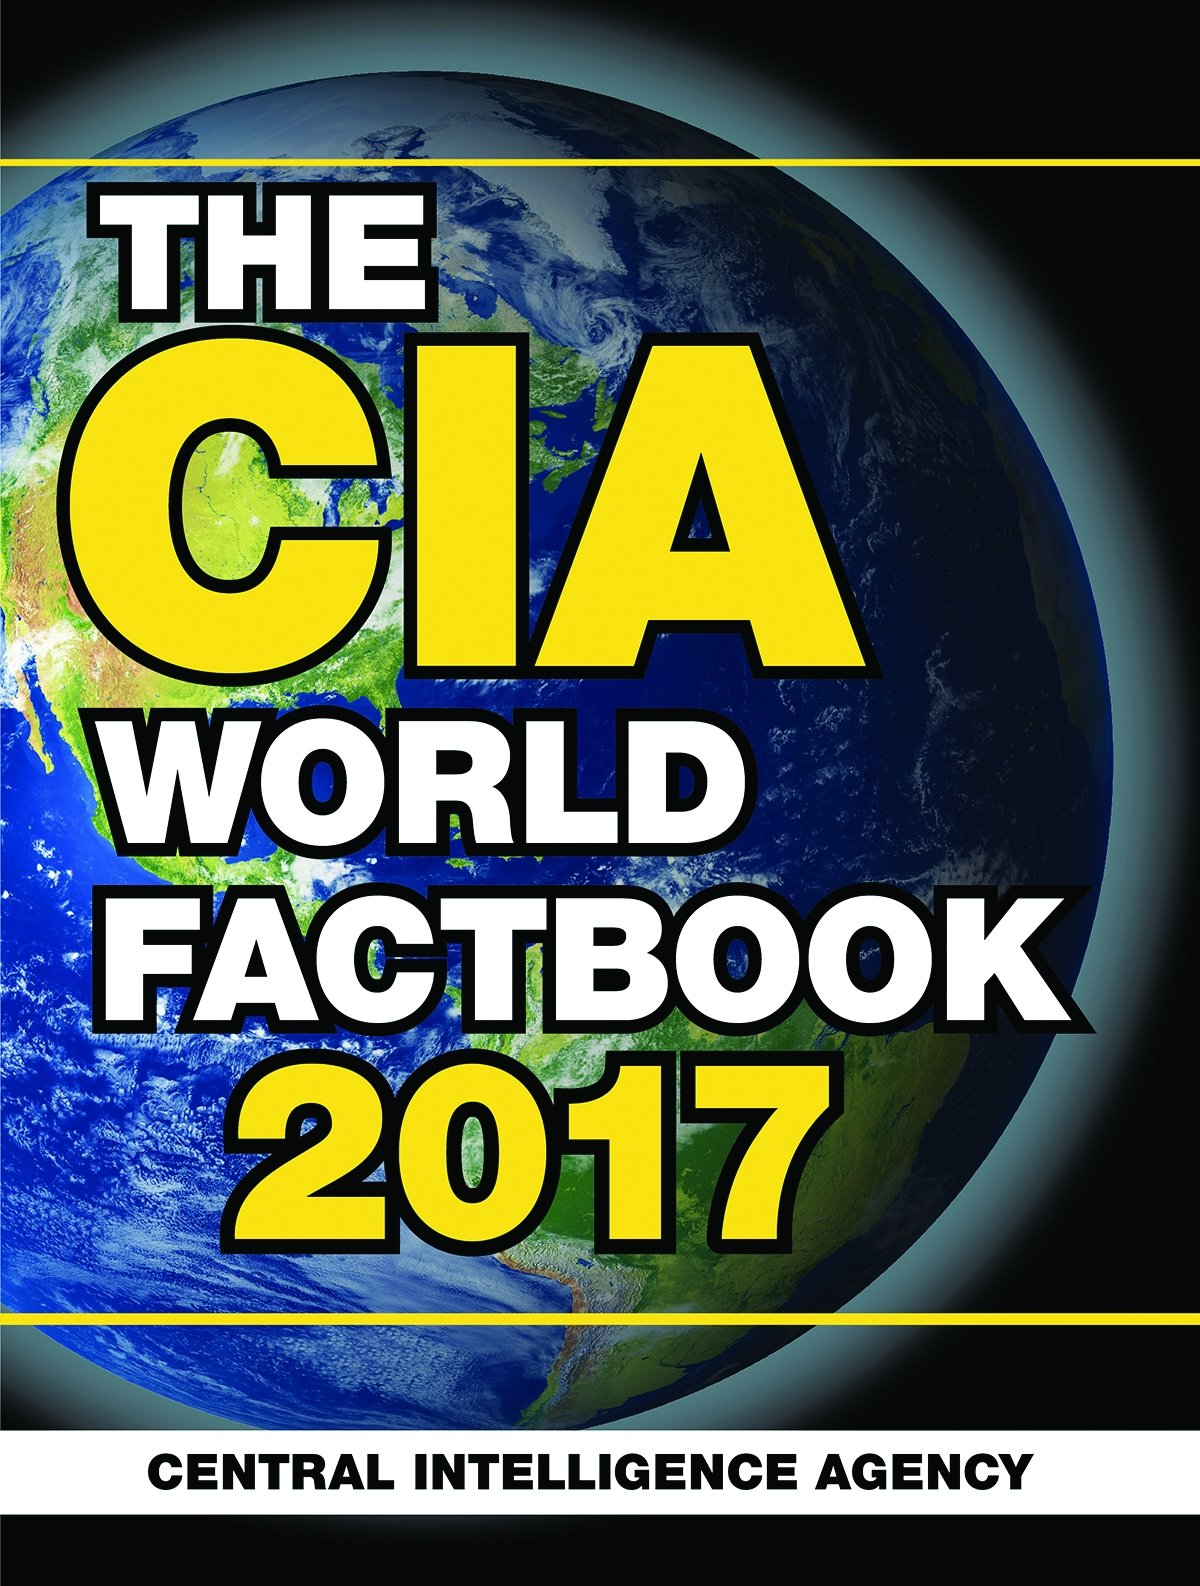 The CIA World Factbook 2017 Paperback – 8 Nov 2016 Central Intelligence Agency Skyhorse Publishing 1510712887 Current Affairs & Issues